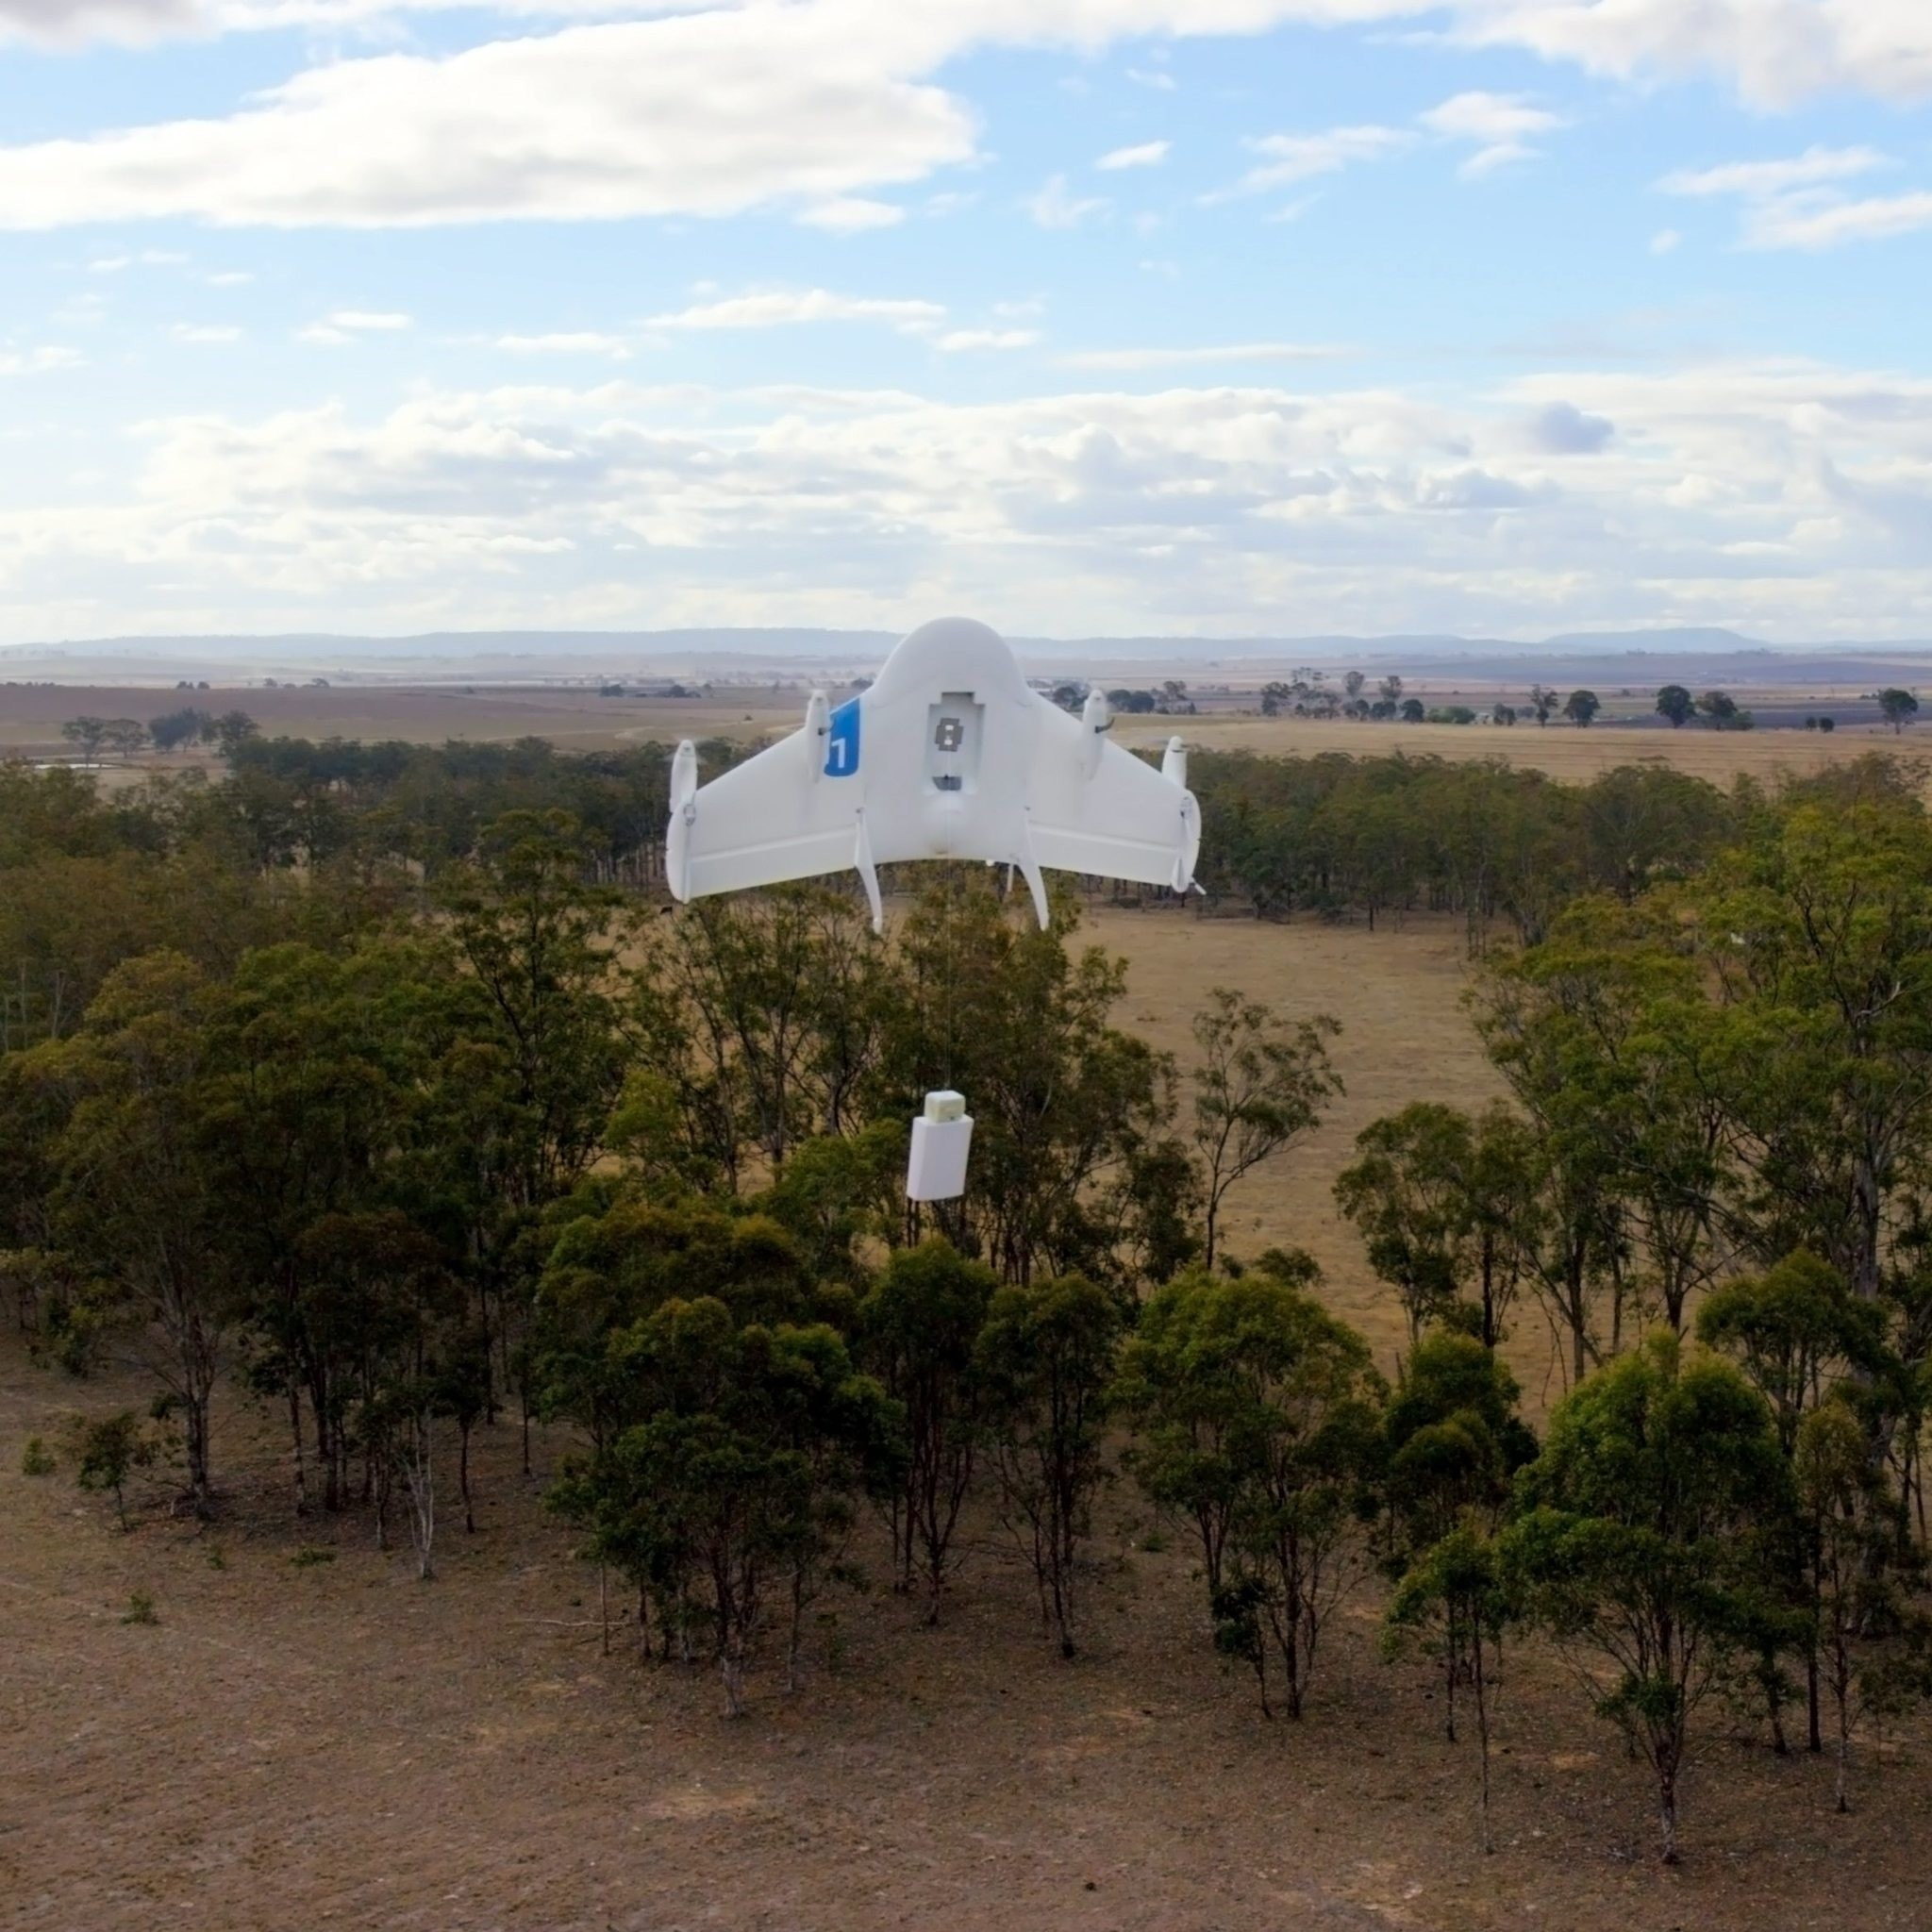 The drones, which drop boxed packs of blood slowly to the earth via a paper parachute, now deliver 20 percent of the blood supply outside the Rwandan capital Kigali.